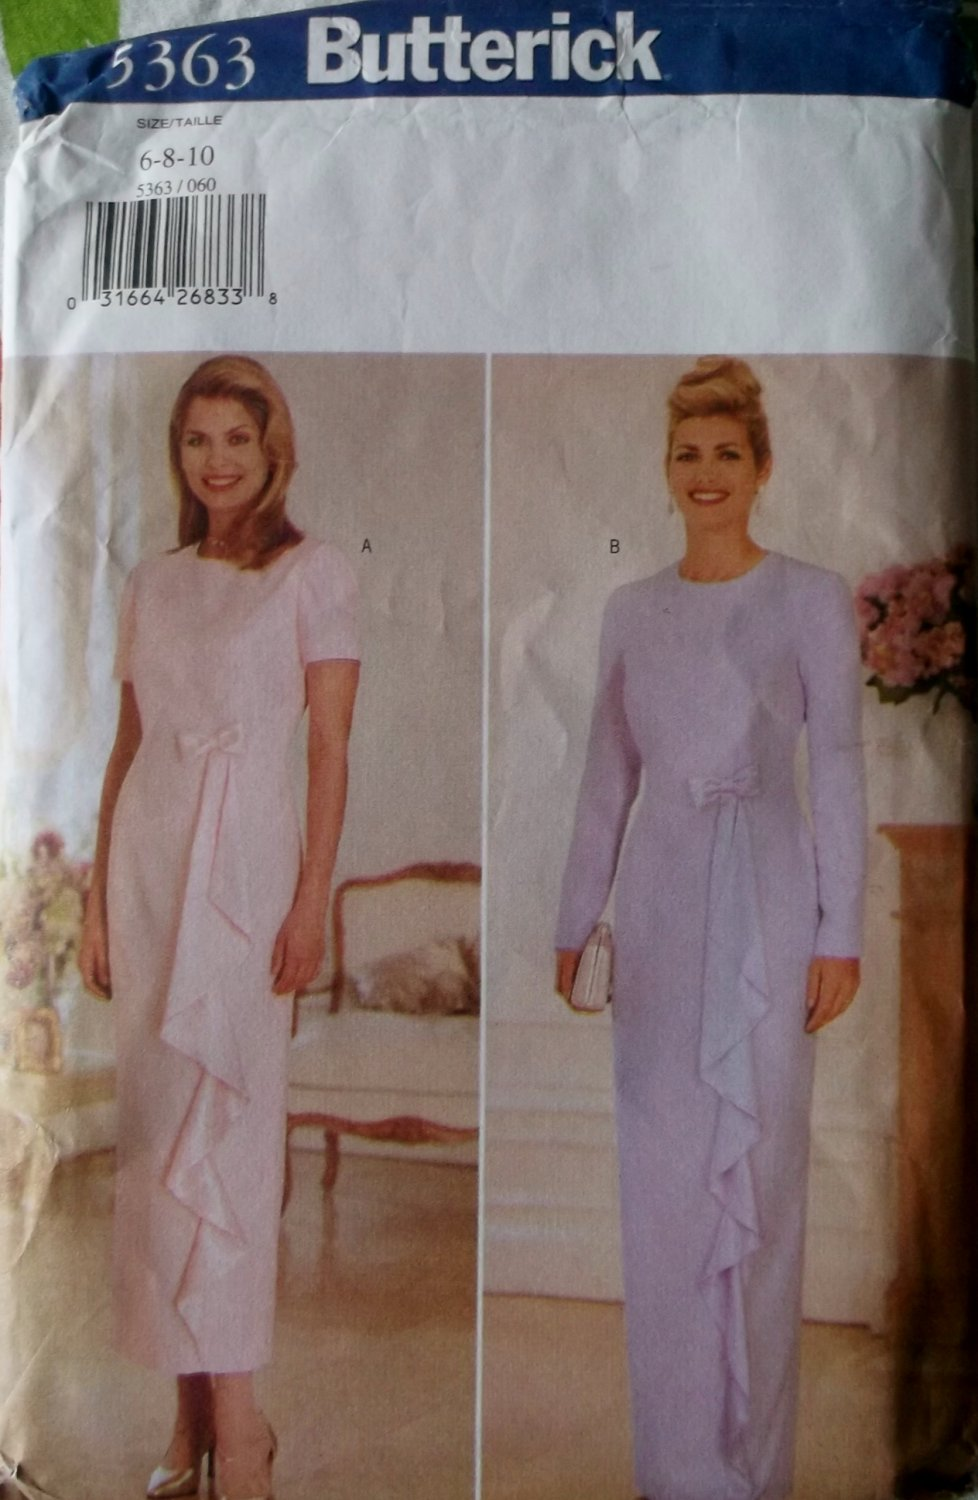 Butterick 5363 Sewing Pattern, Dress Size 6, 8, 10, UNCUT